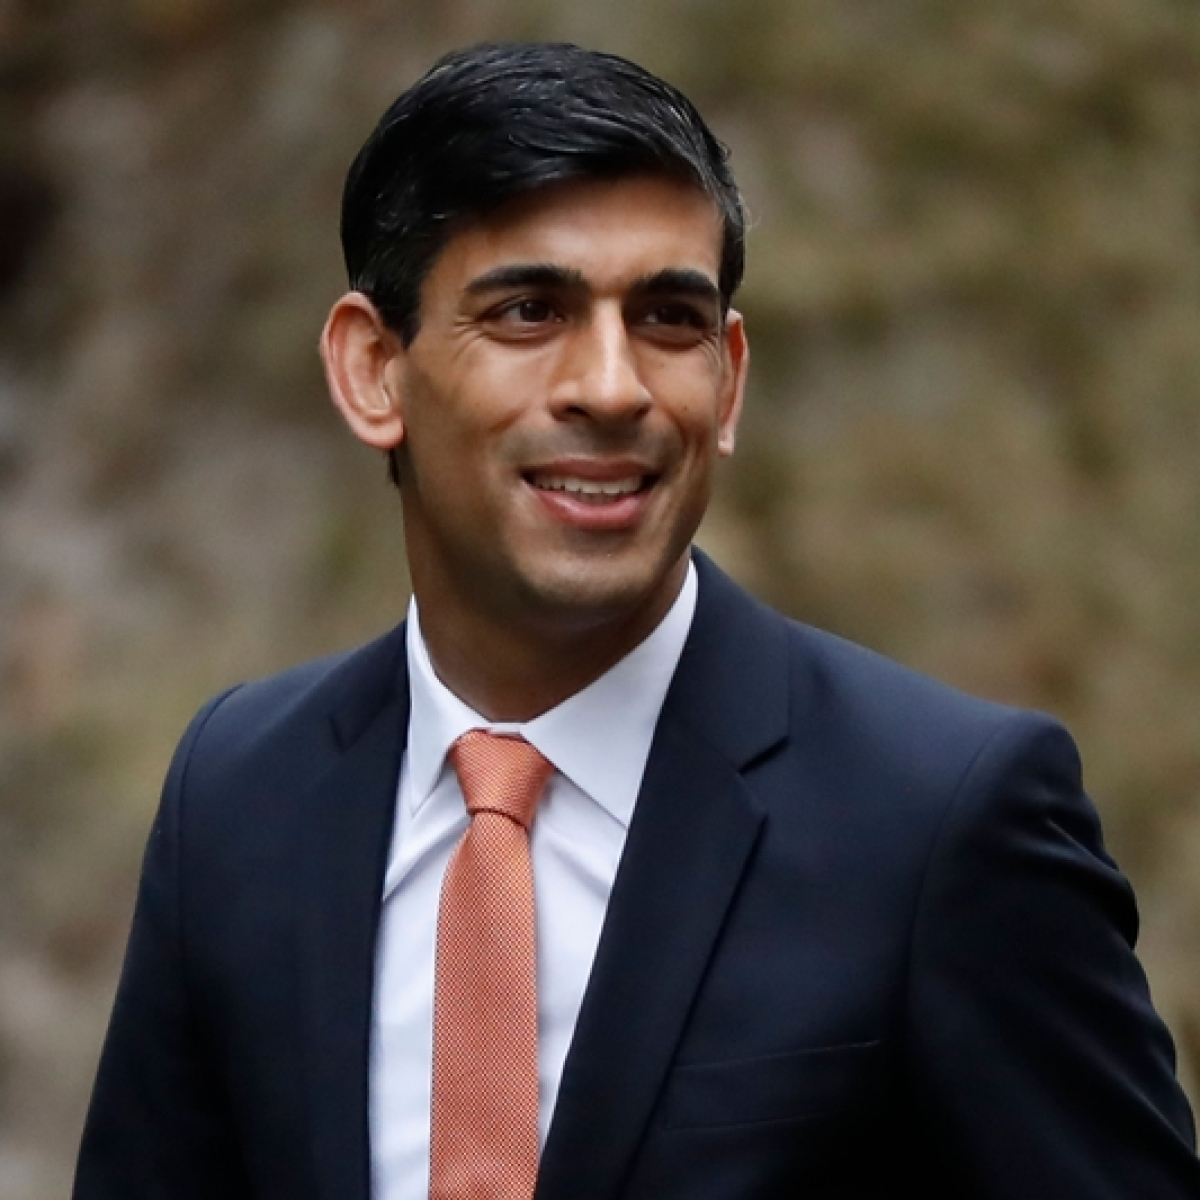 Infosys Co-founder Narayana Murthy's son-in-law Rishi Sunak appointed as UK's Finance Minister